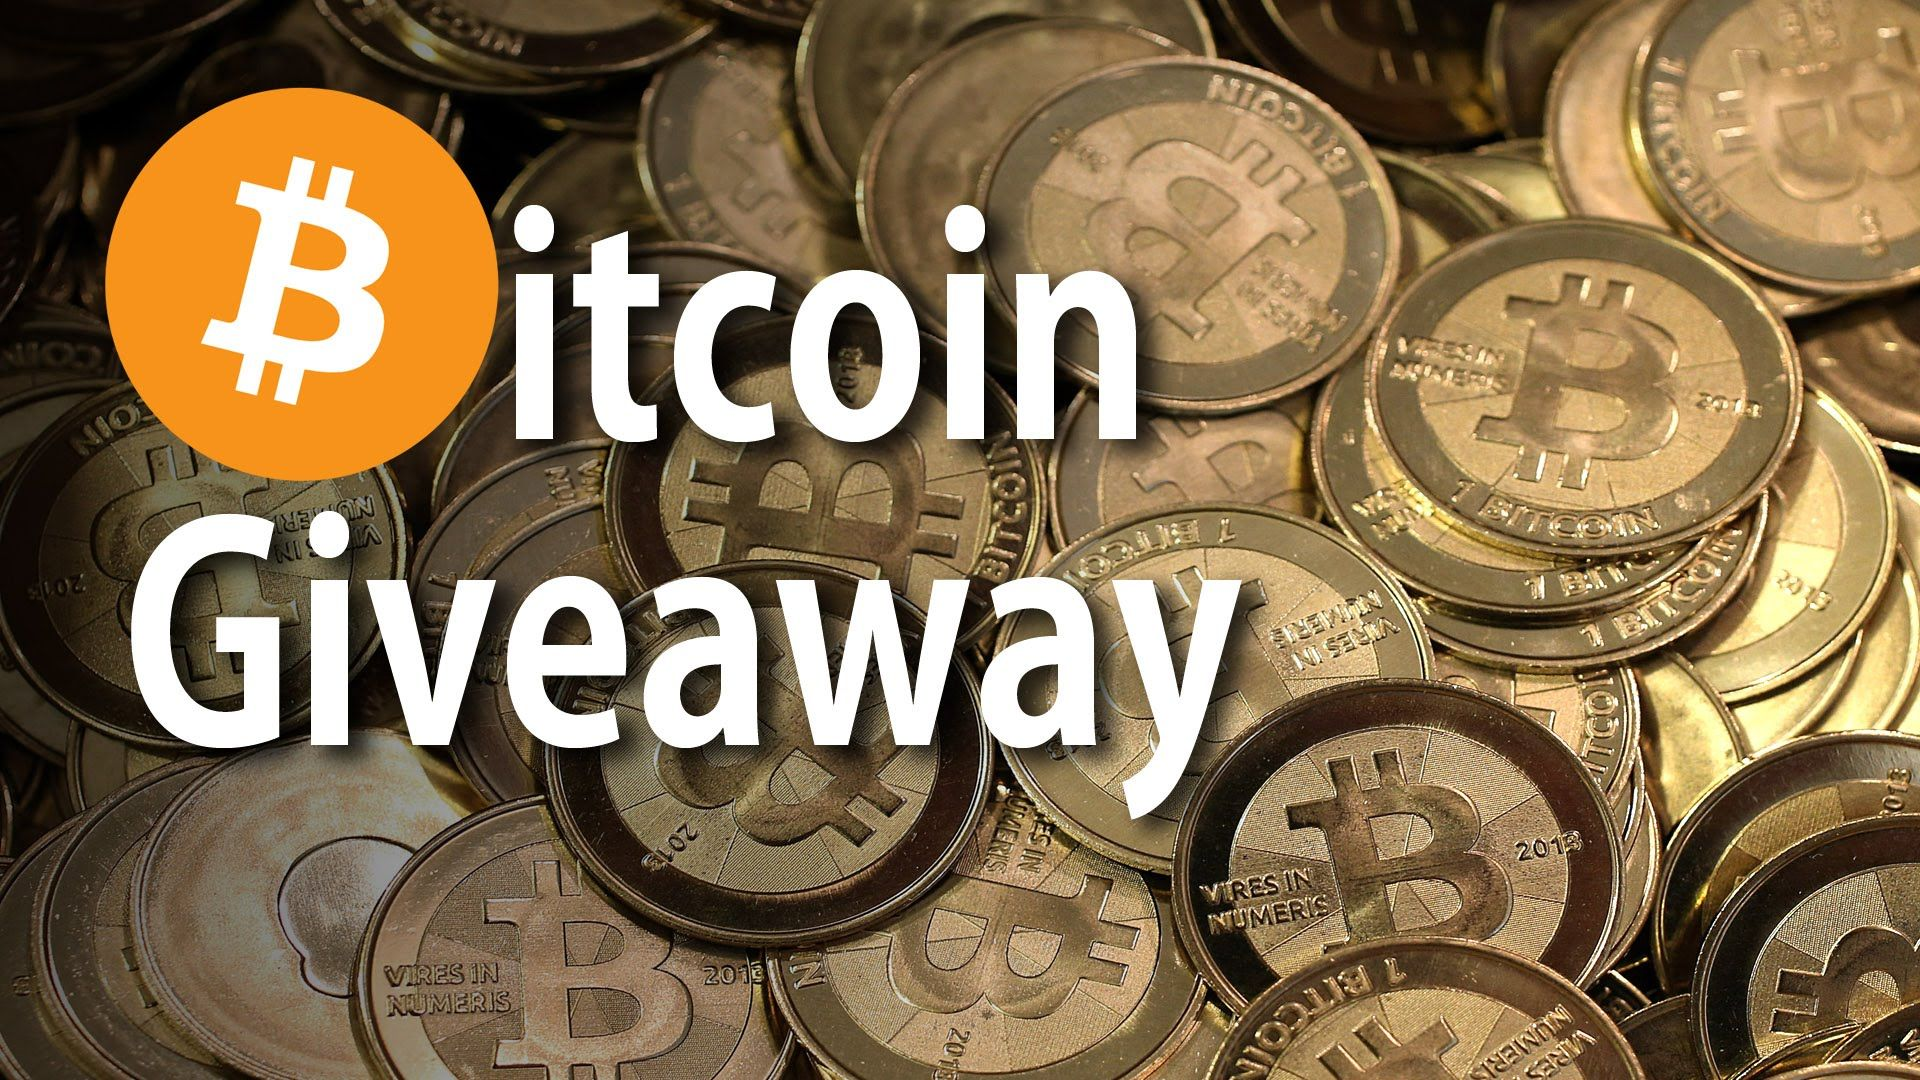 $1,000 BTC Giveaway! (10 x Winners)  Ends 2 5 2019 | Gleams in 2019